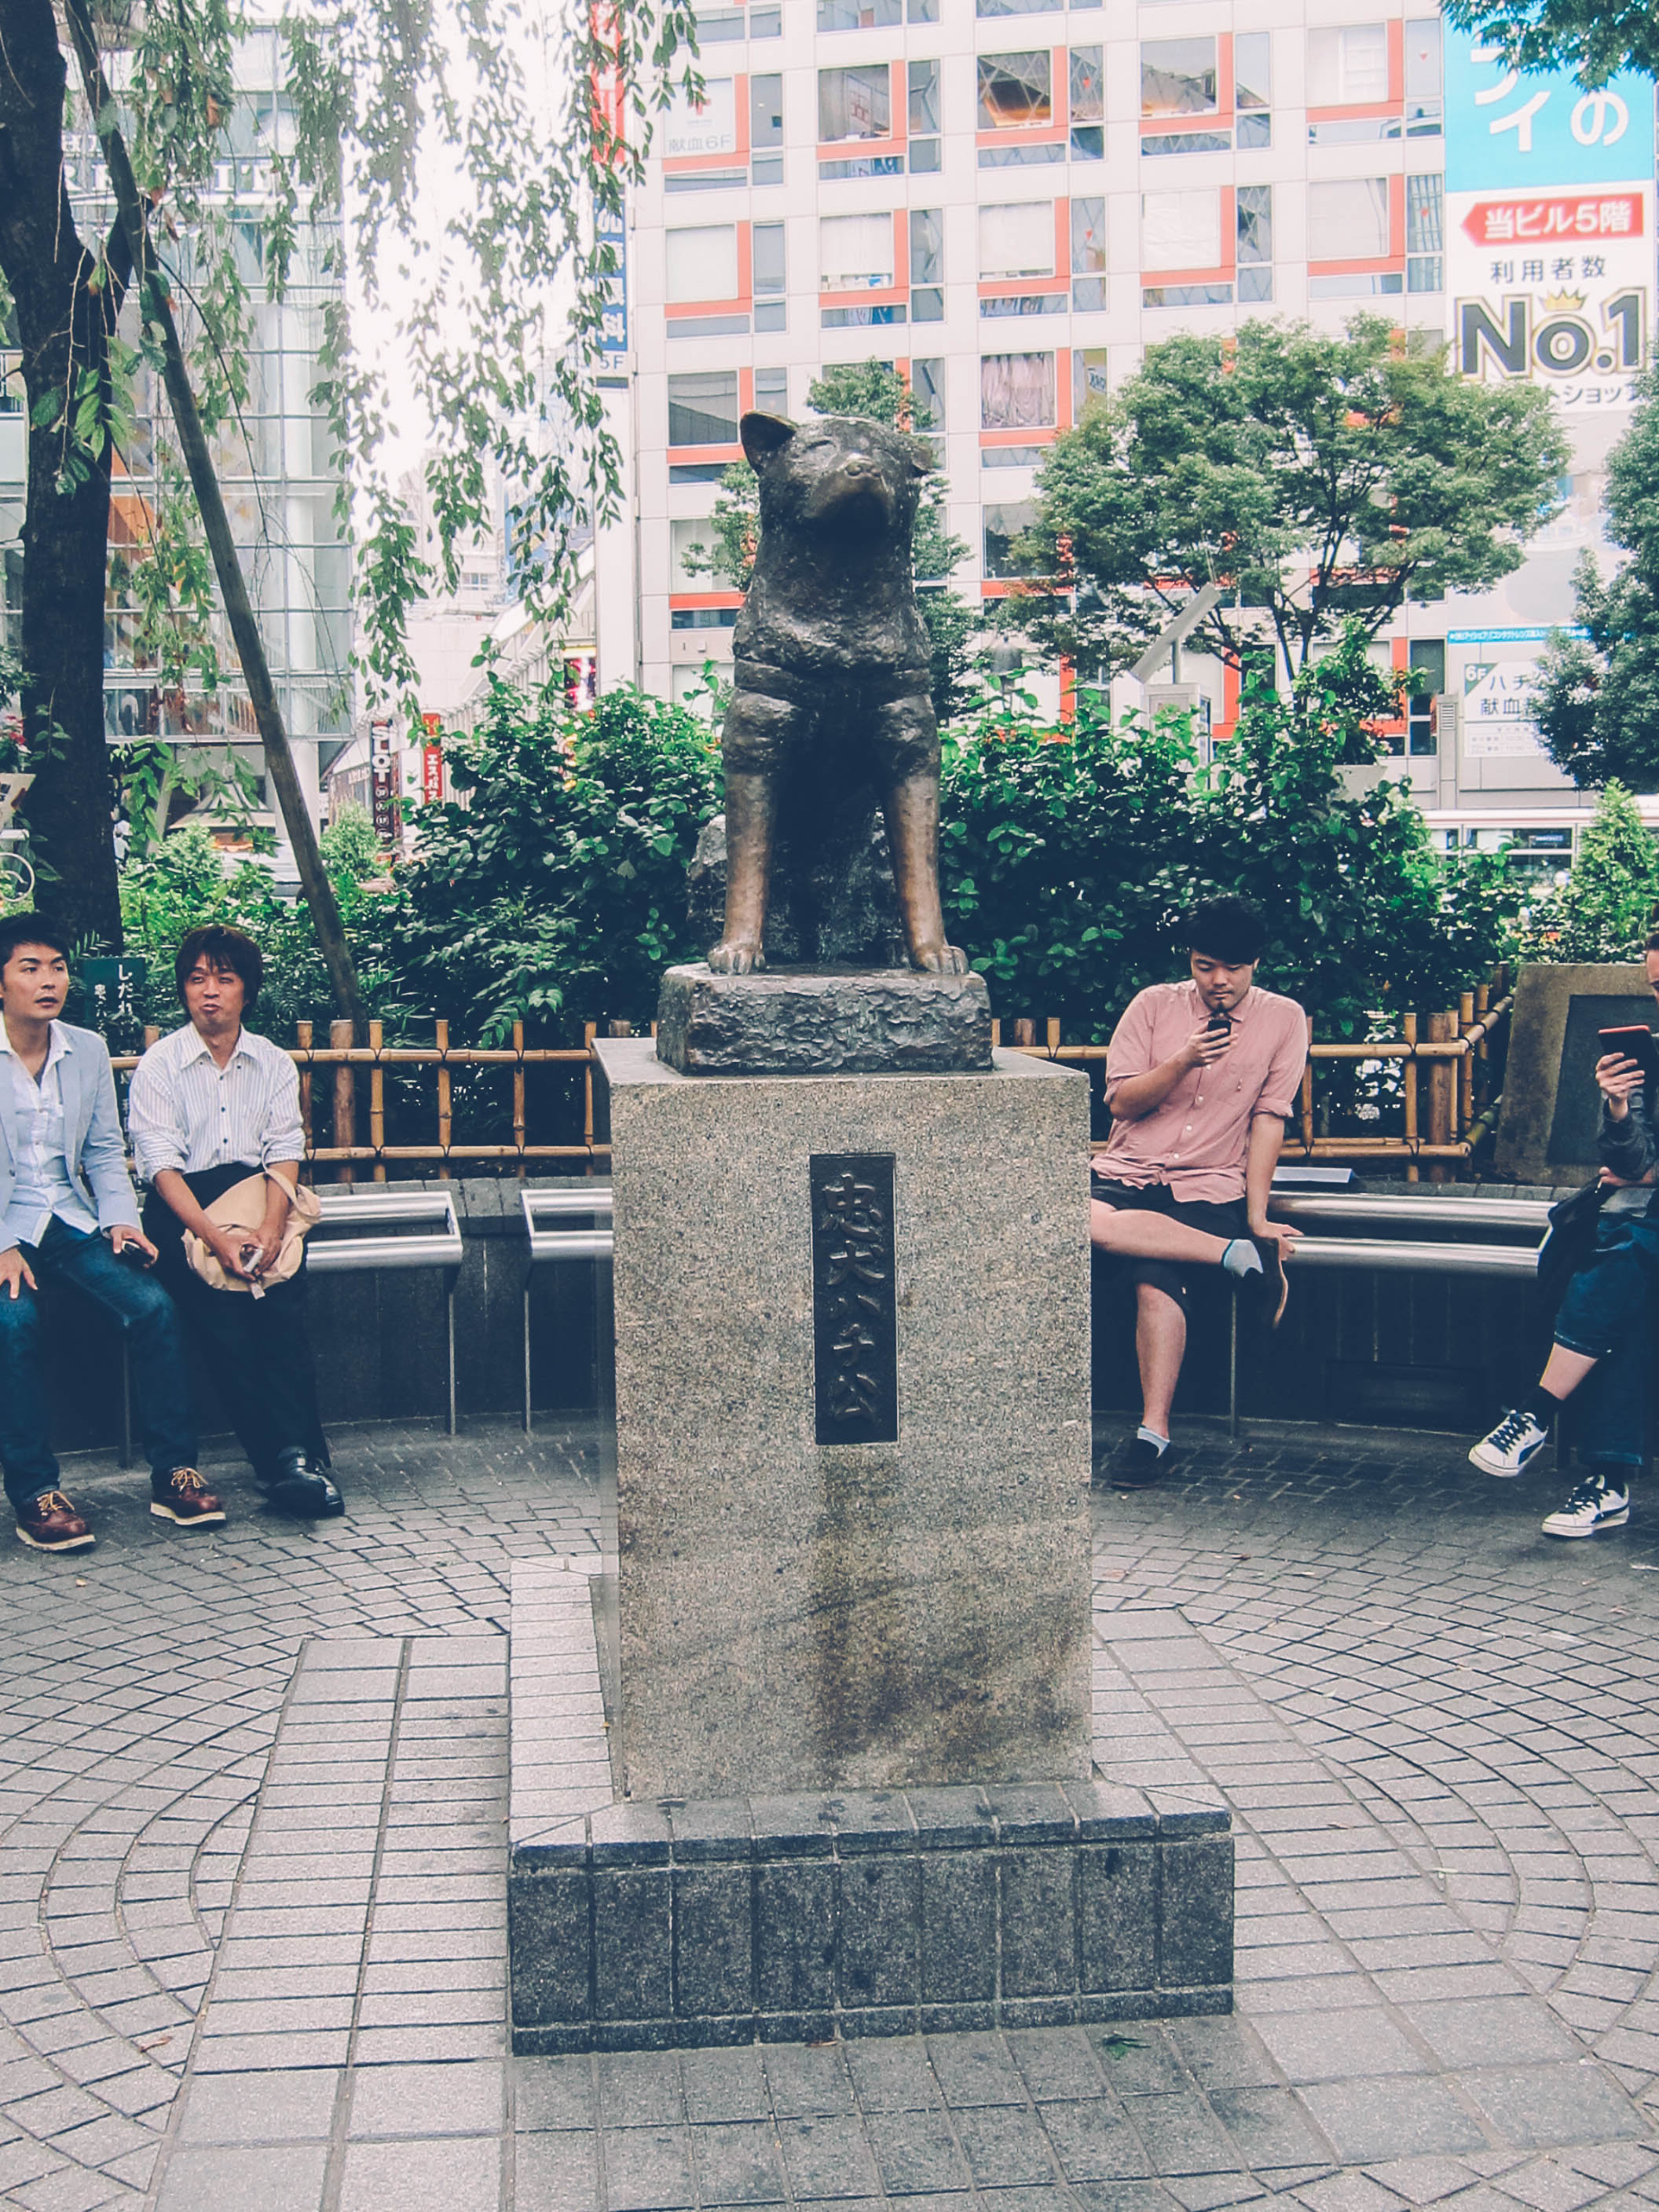 HACHIKO. A statue dedicated to the 'World's Most Loyal Dog.' at the Shibuya Station. Photo by Wyatt Ong/Rappler